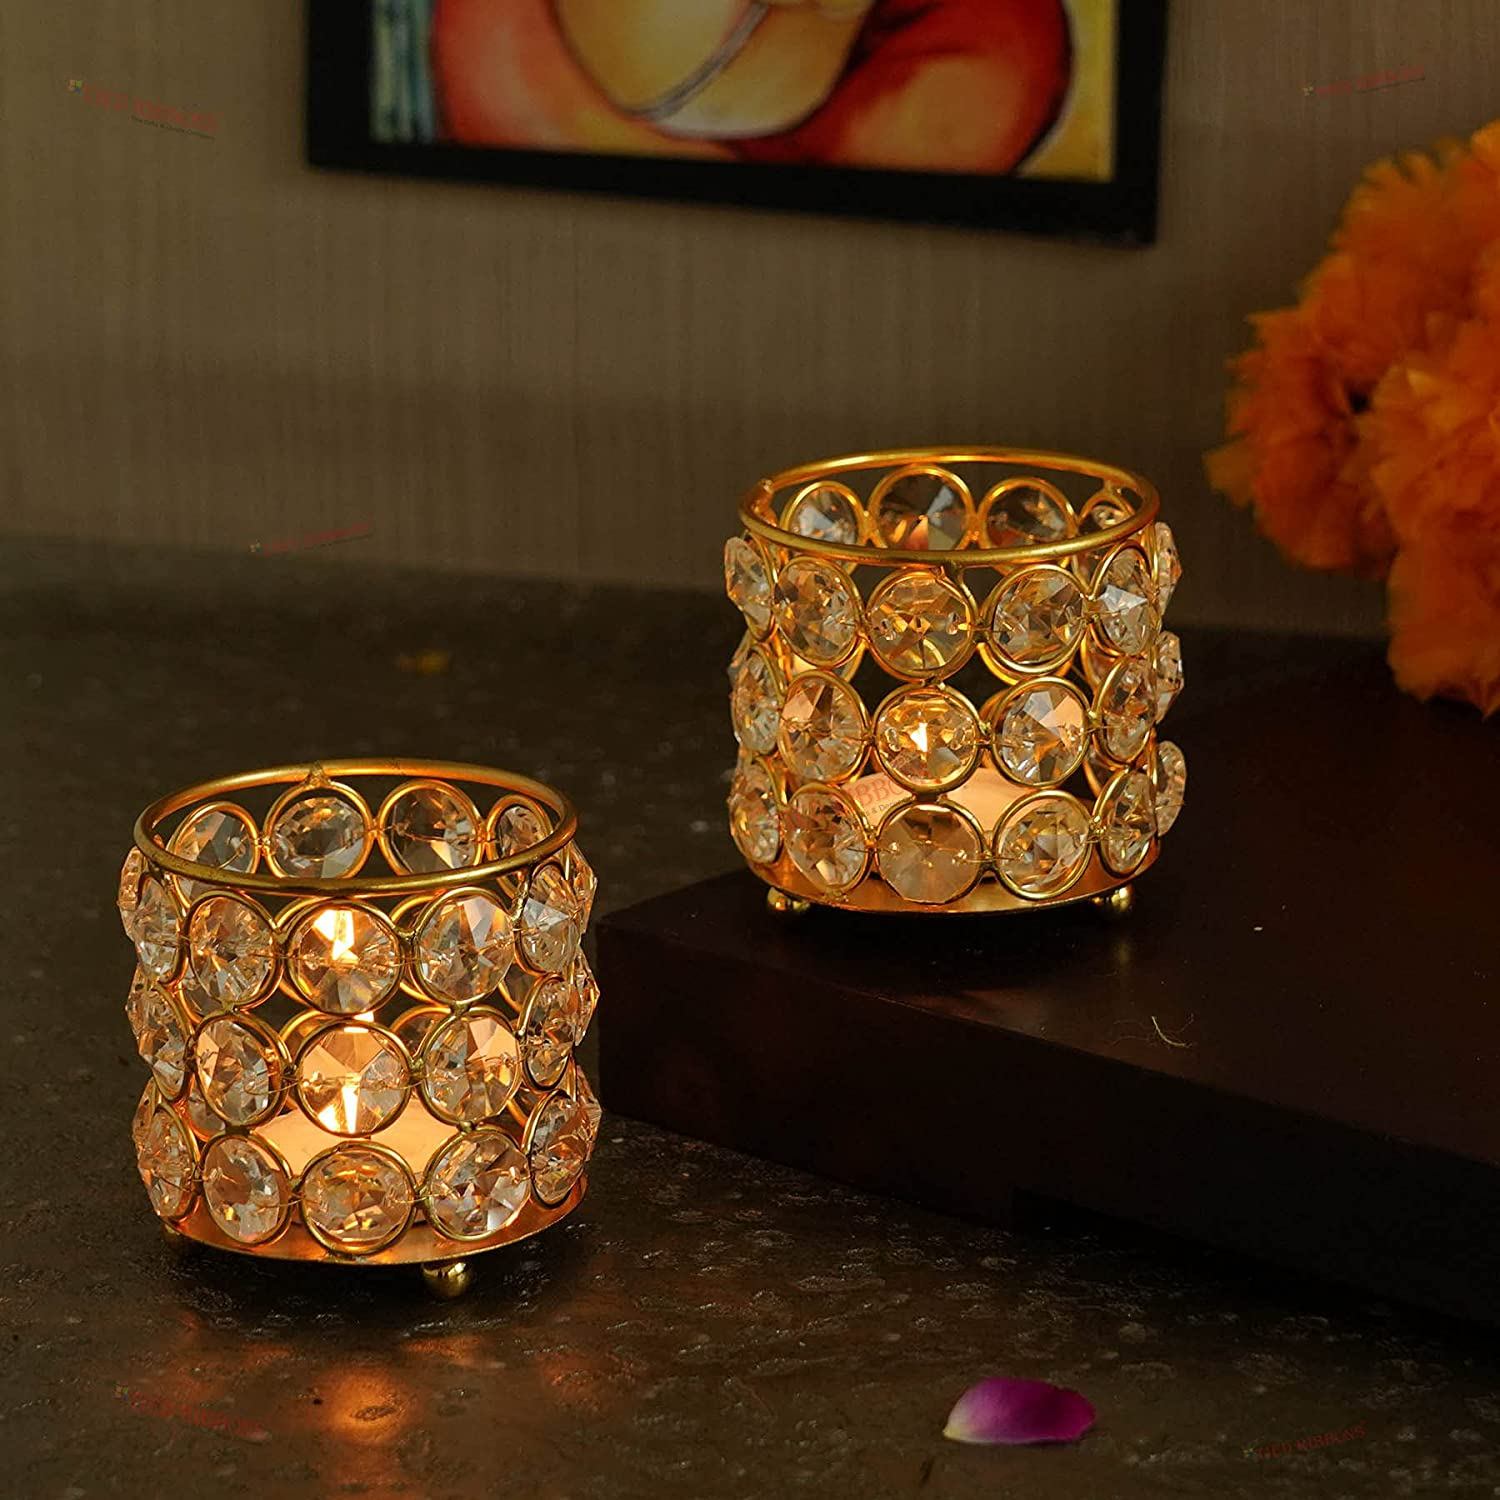 TIED Bombing new work RIBBONS Crystal Tealight Candle - Home for Décor free Holder